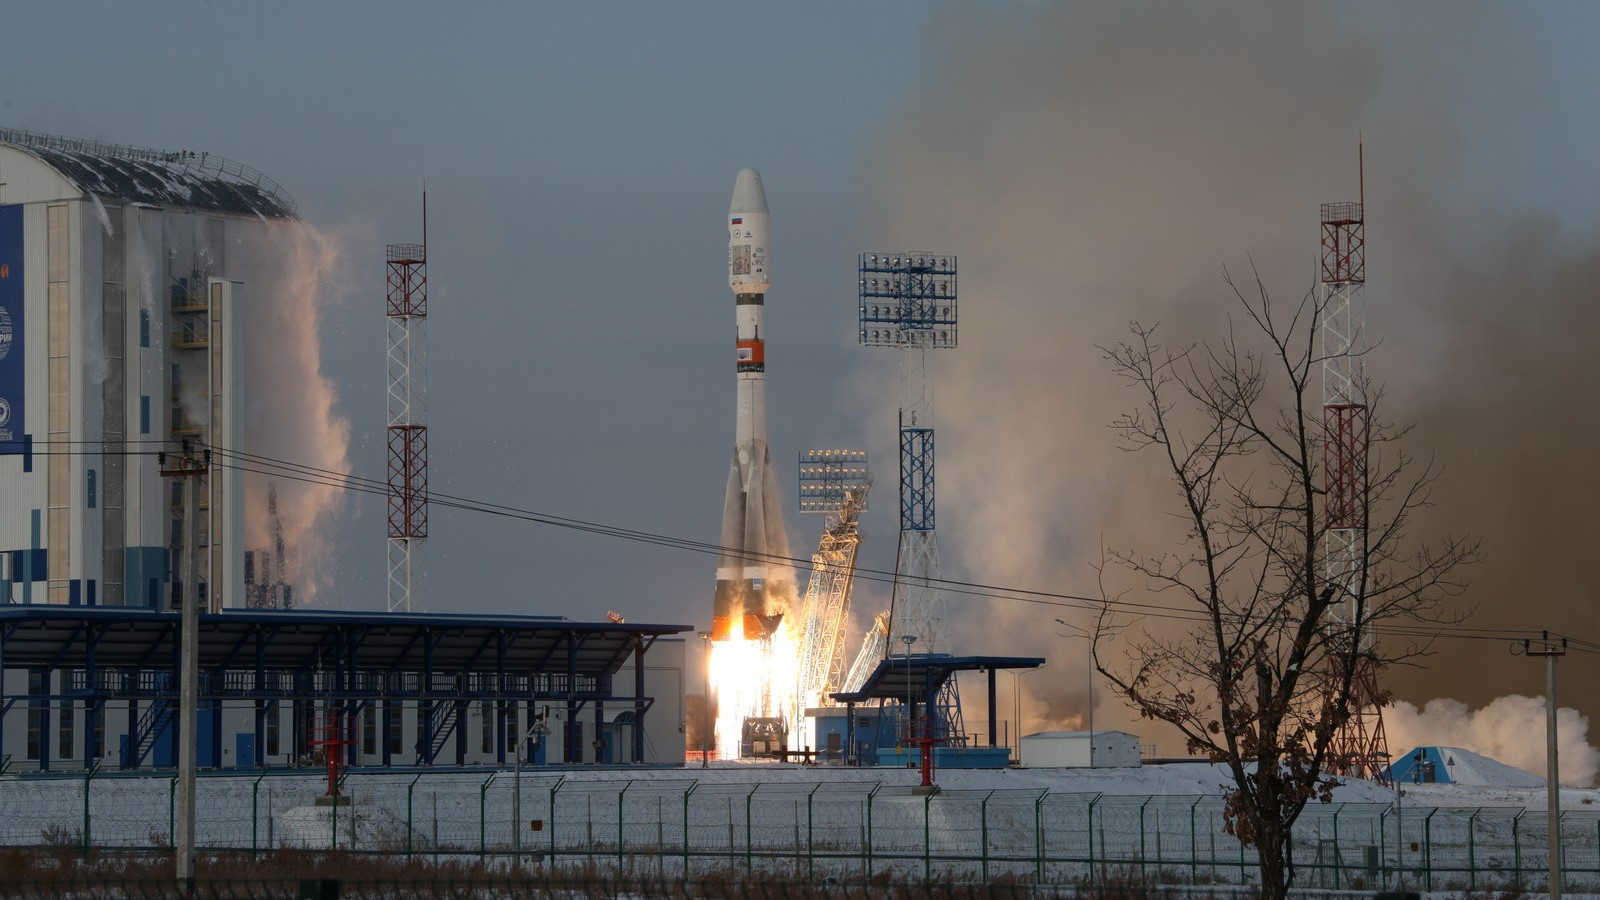 A Soyuz 2.1b launches with the Meteor-M 2-1 satellite and 18 secondary payloads. Liftoff took place from Vostochny Cosmodrome in Russia's Far East. However, contact with the upper stage was later lost. Photo Credit: Roscosmos